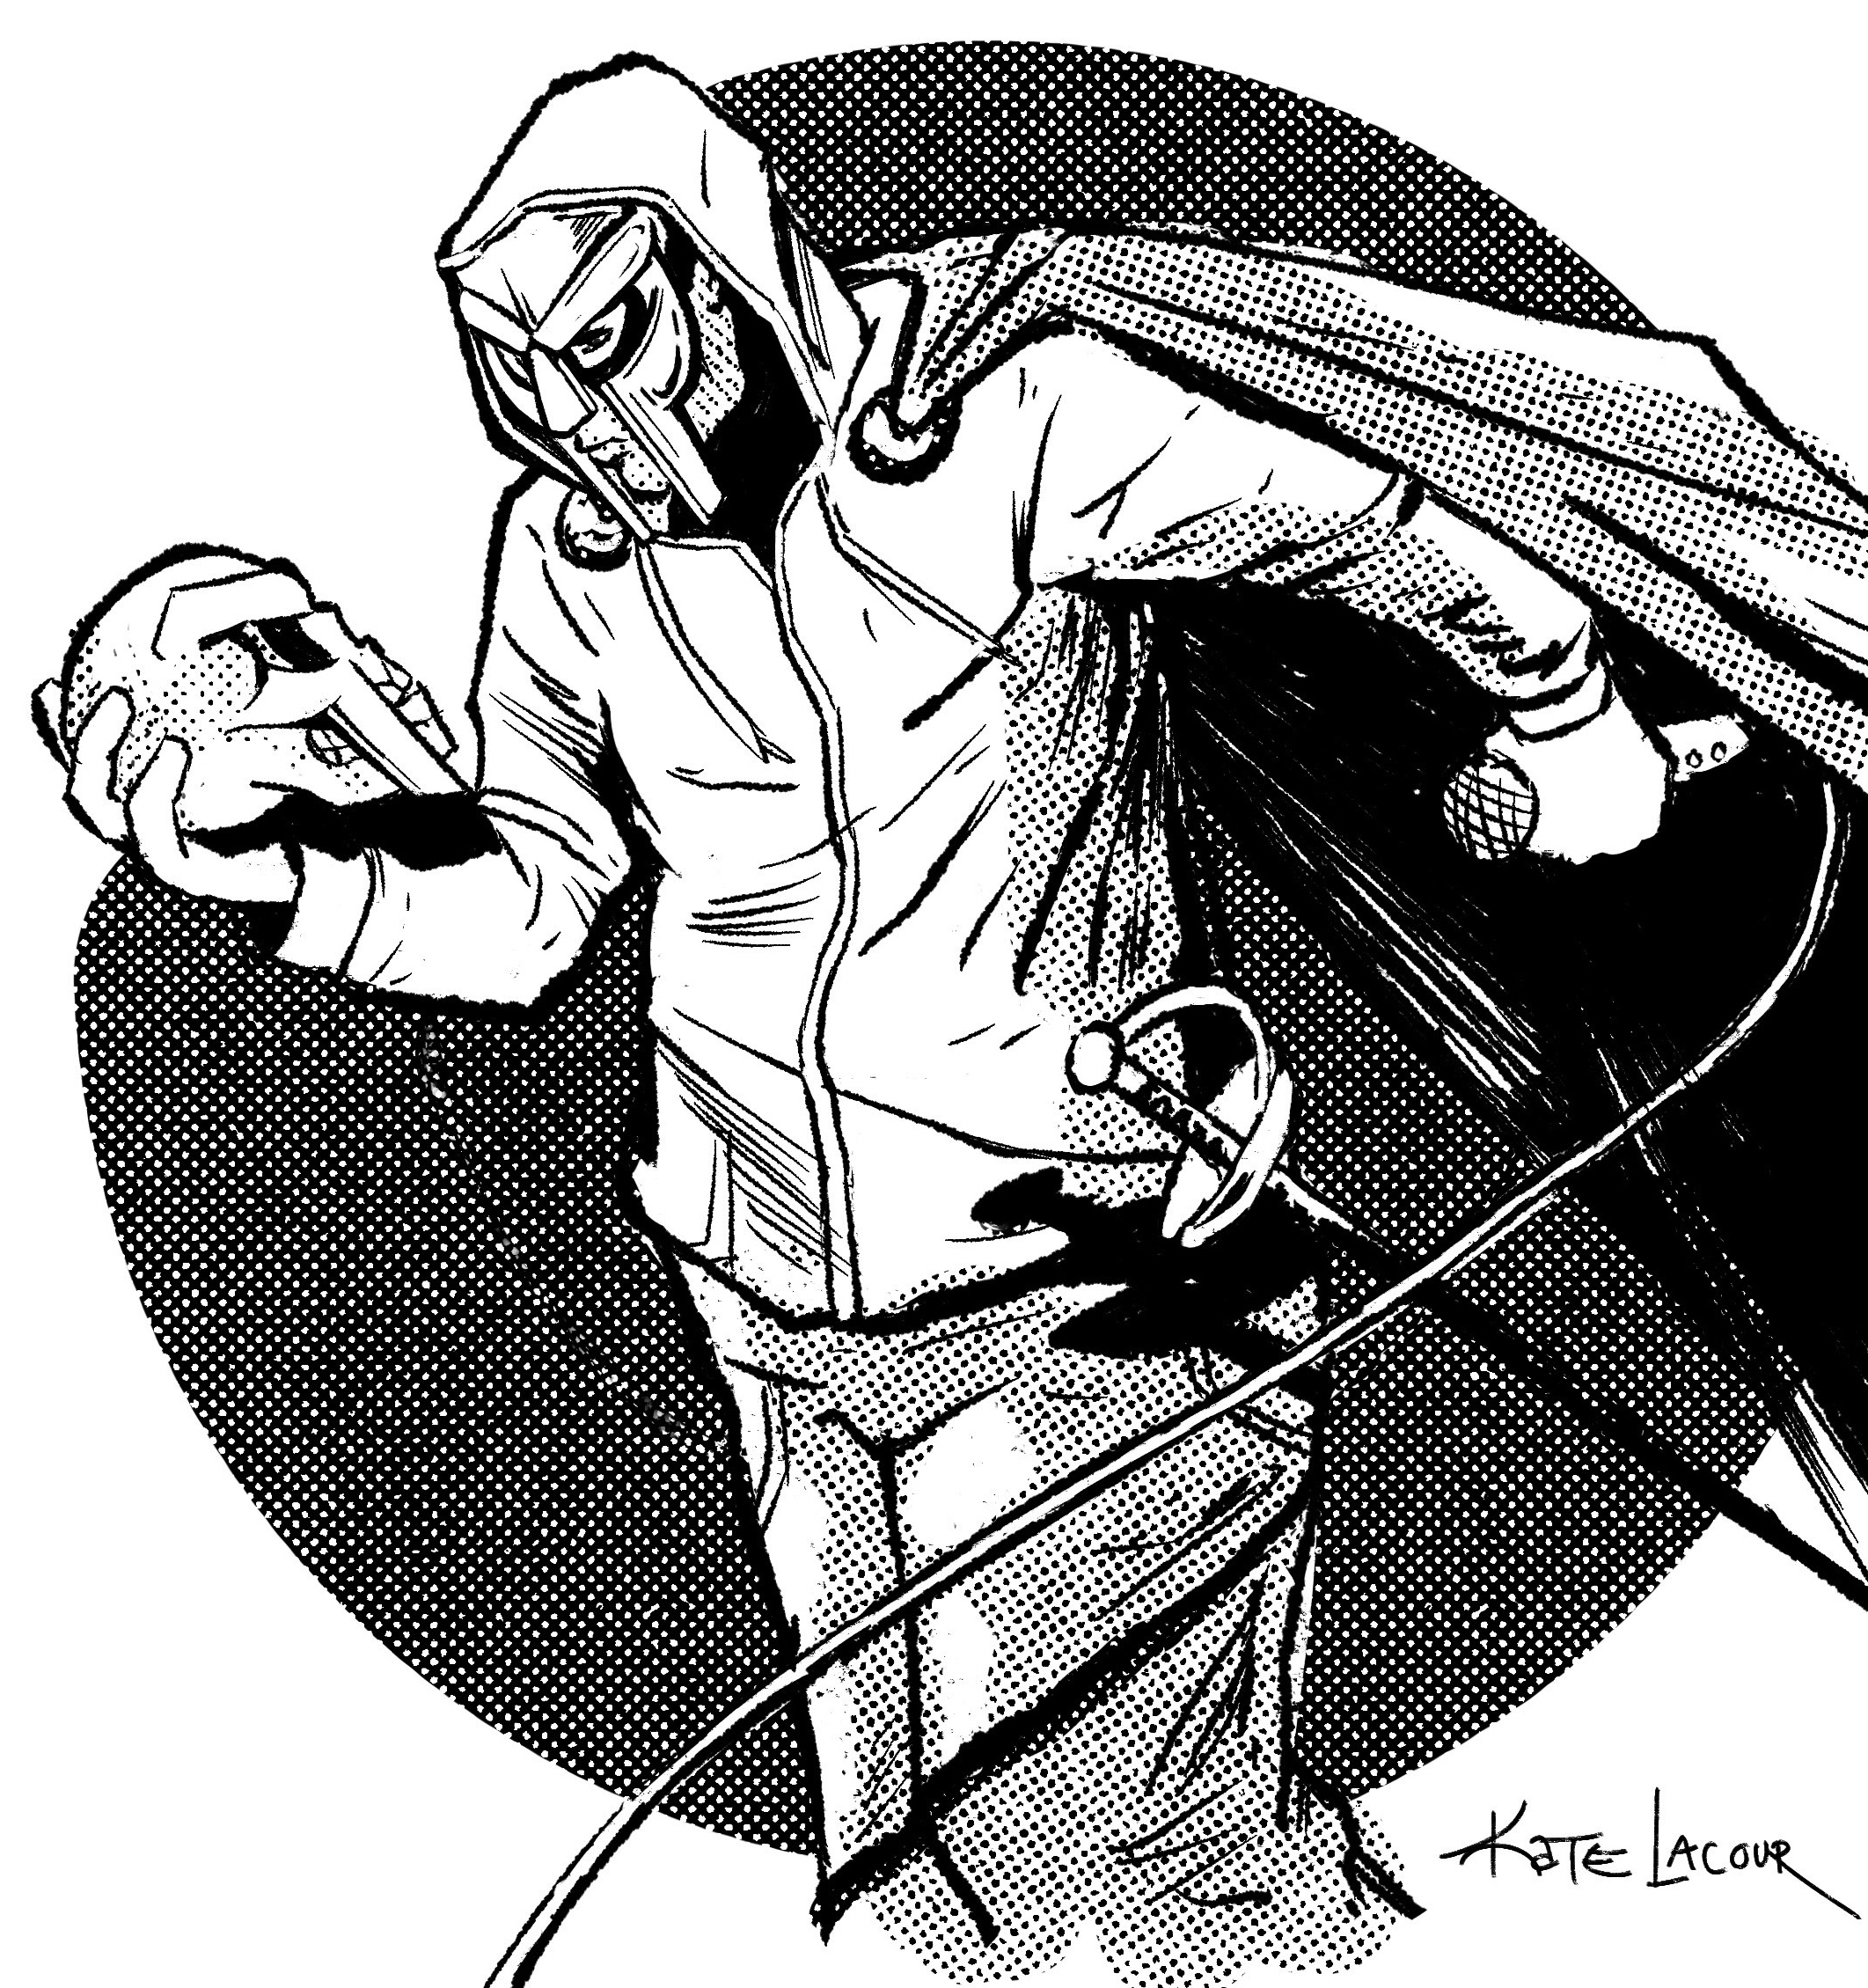 A black and white drawing of MF DOOM holding and looking down at a skull with a mask the same as his. The mask he's wearing covers his eyes and comes down in two parallel lines on either side of his mouth. The skull in his right hand is only visible from the side, but we can see it has the same design as his mask. He's wearing a cape, holding a microphone, and has a sword attached to his hip. The shading is all done with dots, and there's a dark circle behind him, like he's a comic book character. Illustration by Kate Lacour.